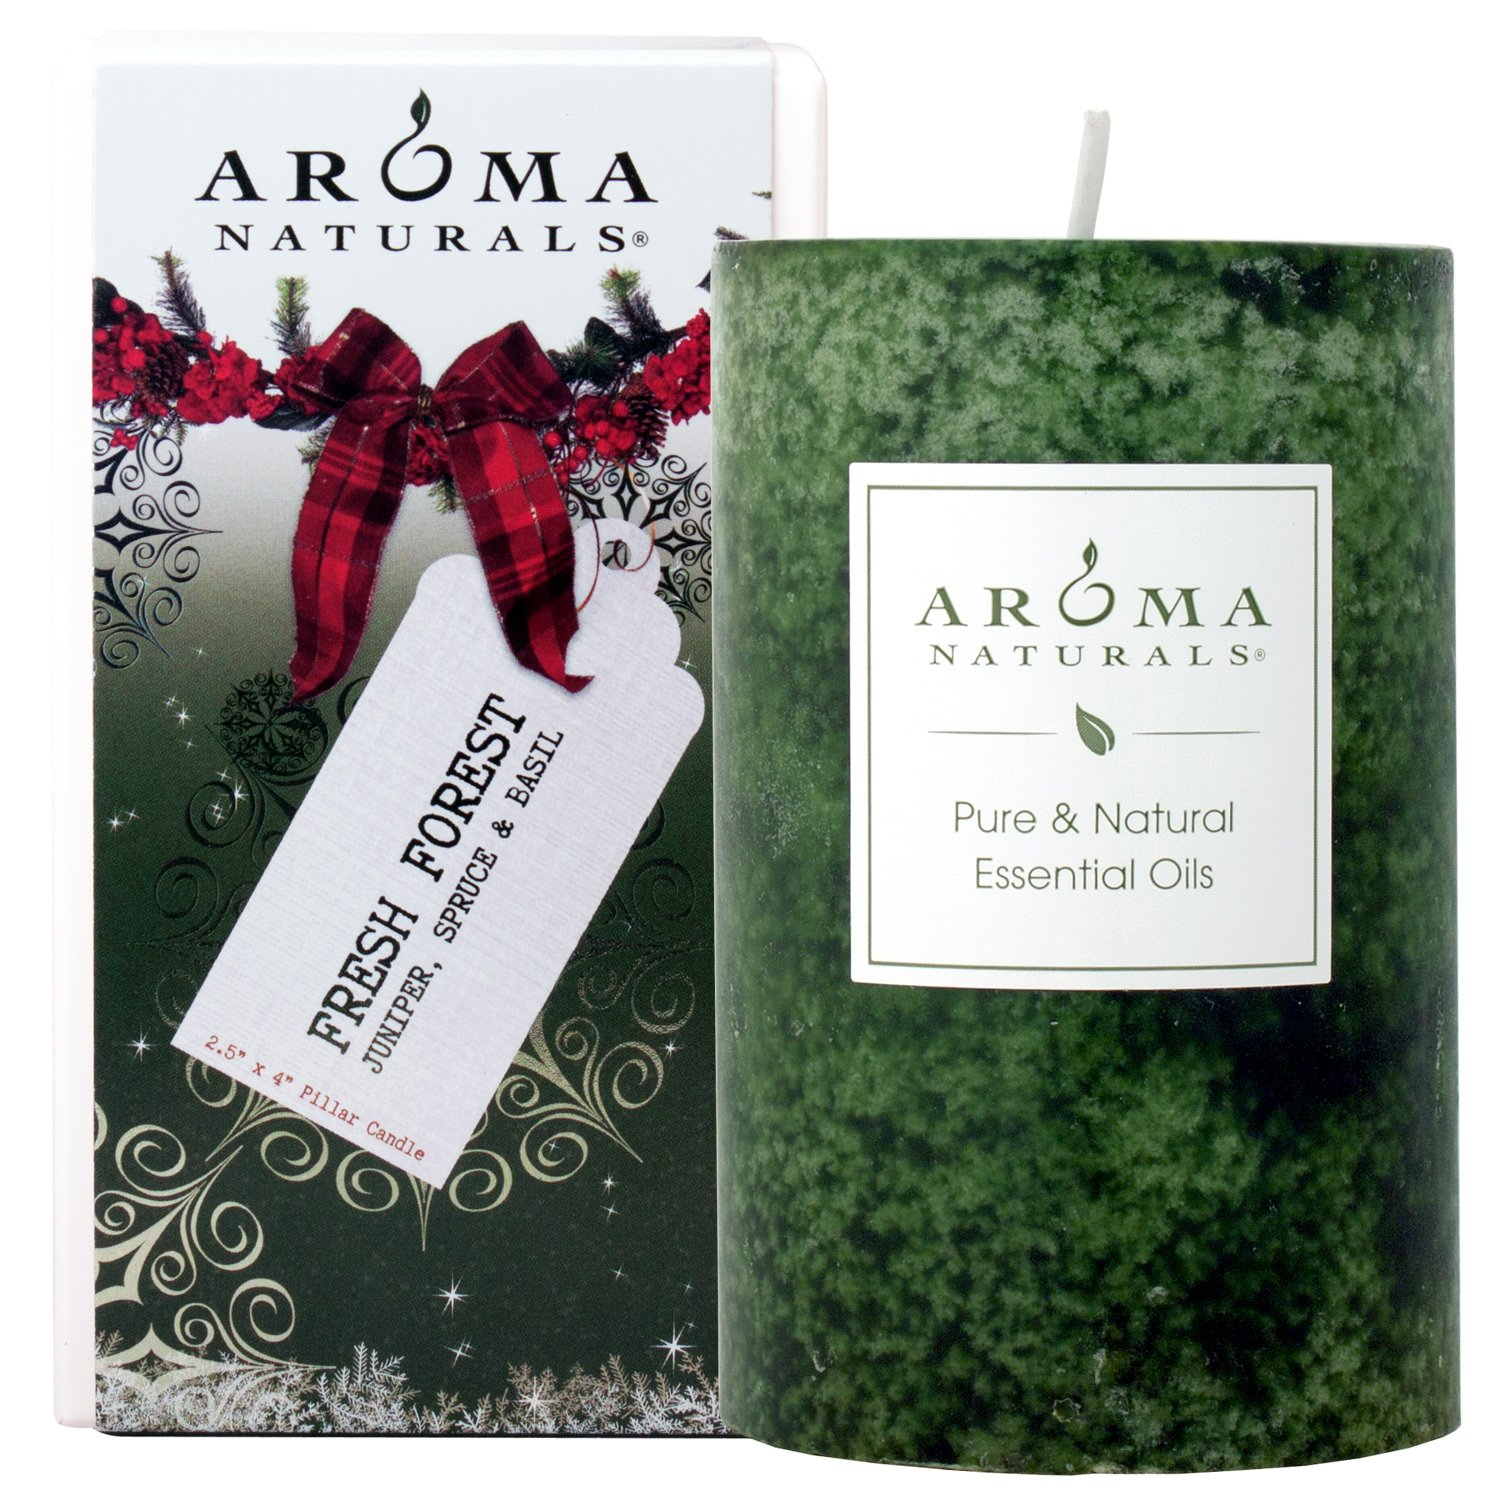 Aroma Naturals Holiday Essential Oil Scented Pillar Candle, Vanilla & Peppermint, Cool Wish, 2.5 inch x 4 inch